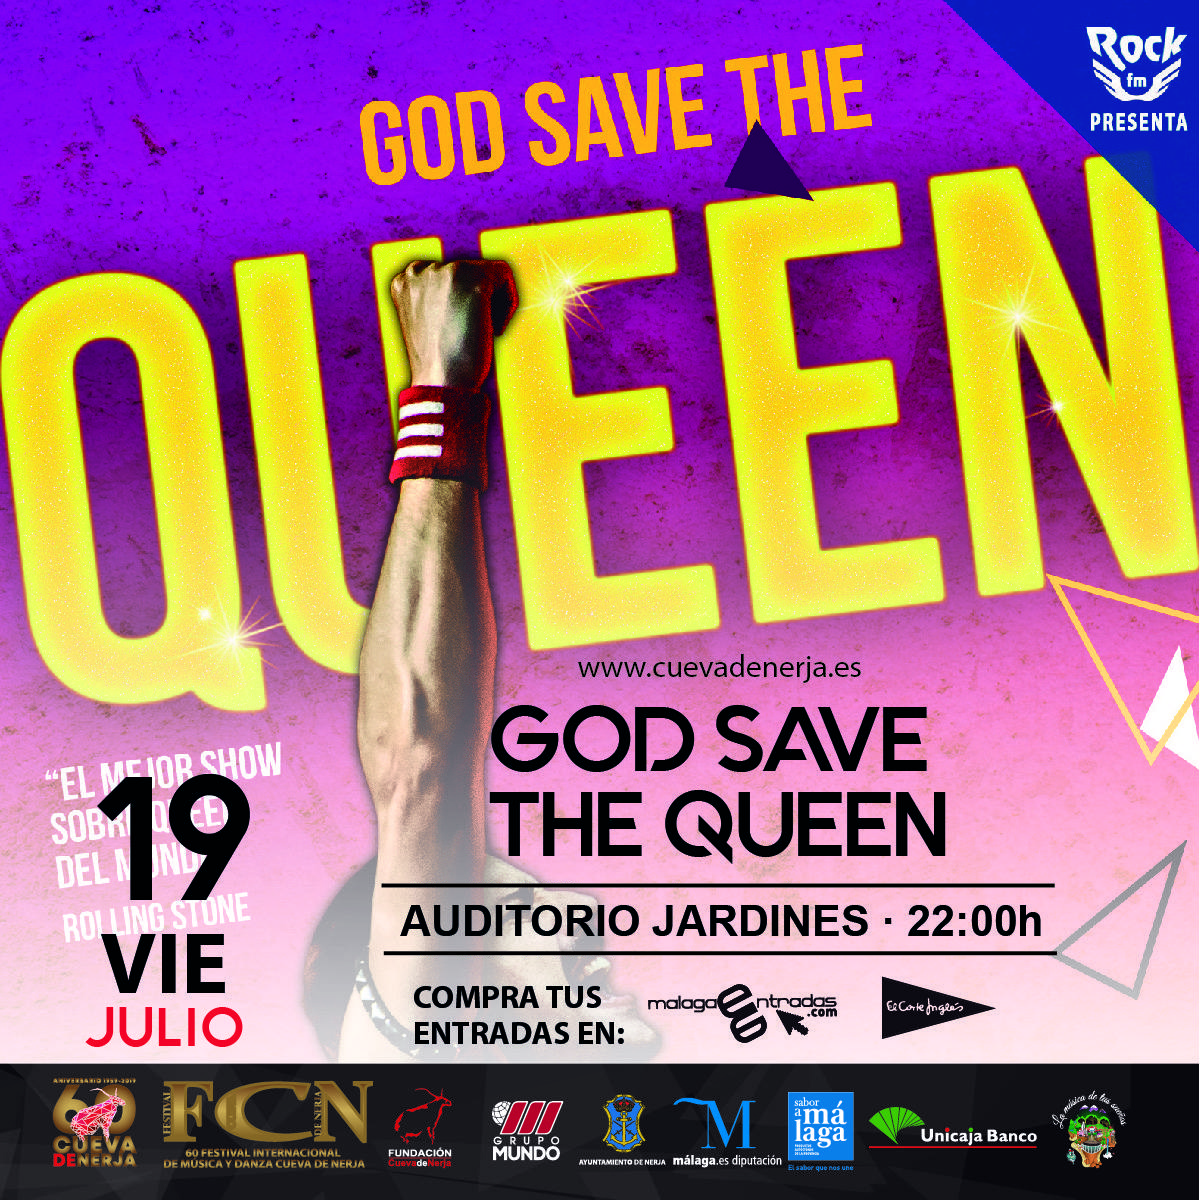 God Save The Queen - Nerja - 19 de julio